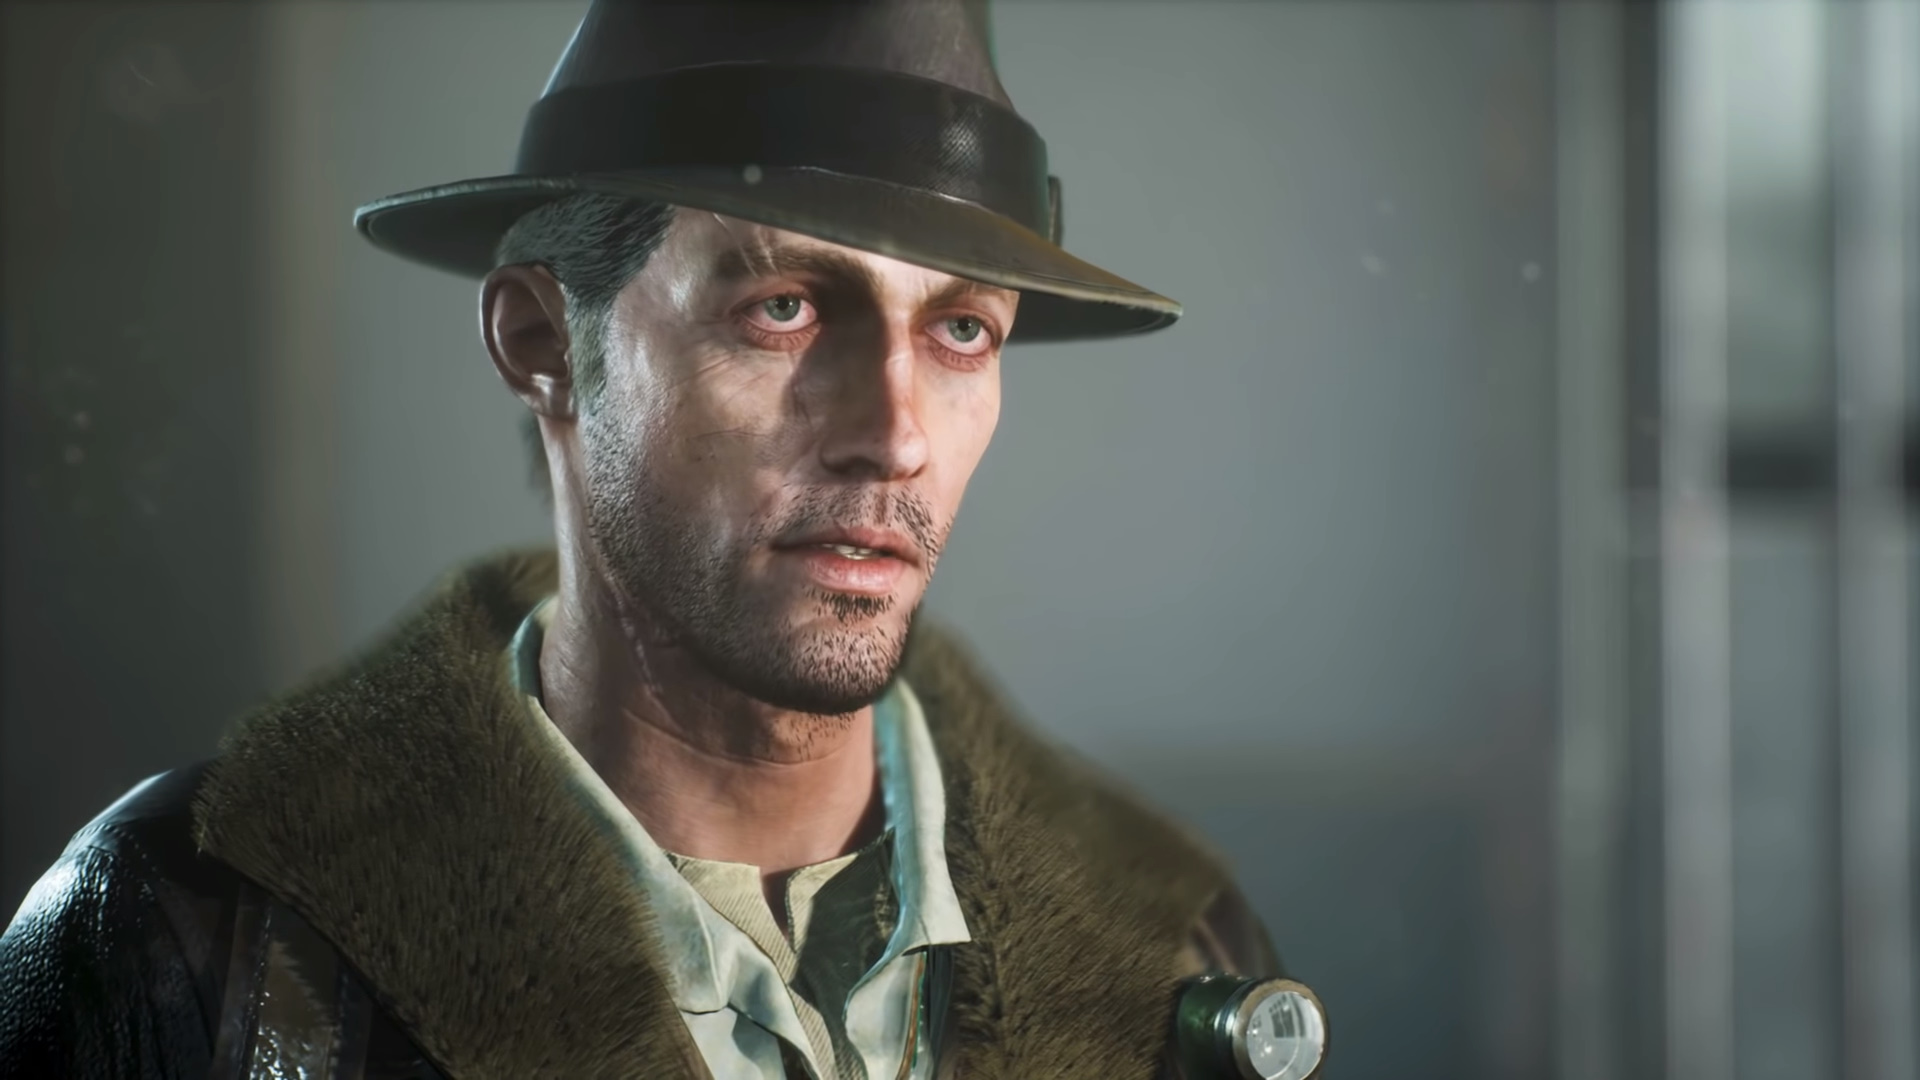 The Sinking City publisher defends its decision to put an 'adapted' copy of the game on Steam